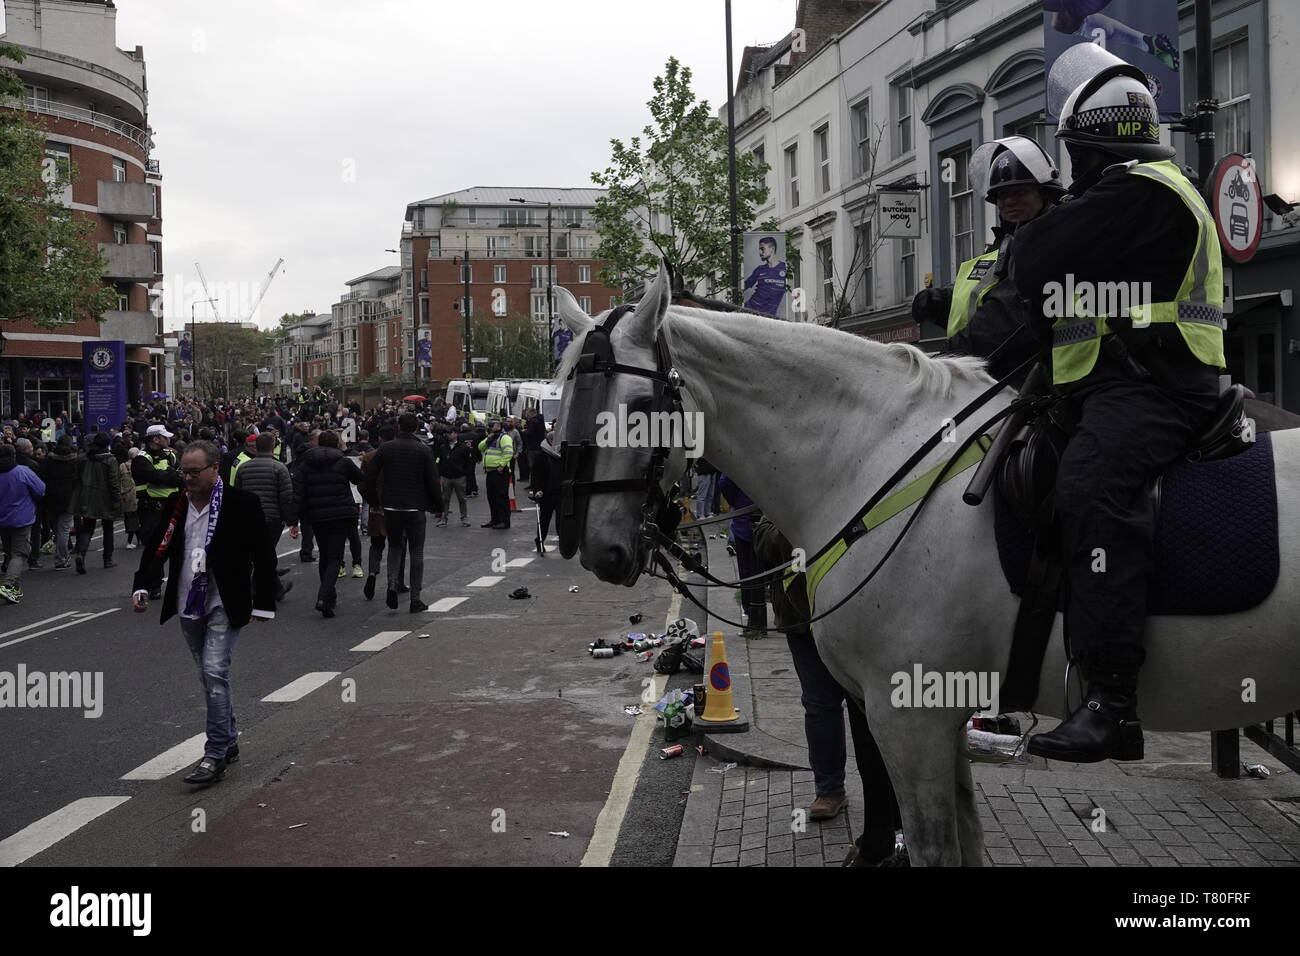 Chelsea, London, UK. 9th May, 2019. Police scour the streets before the Europa League Semi Final second leg match between Chelsea FC and Eintracht Frankfurt FCm where they were on the look out for German fans arriving without tickets, and causing trouble. Credit: Motofoto/Alamy Live News - Stock Image